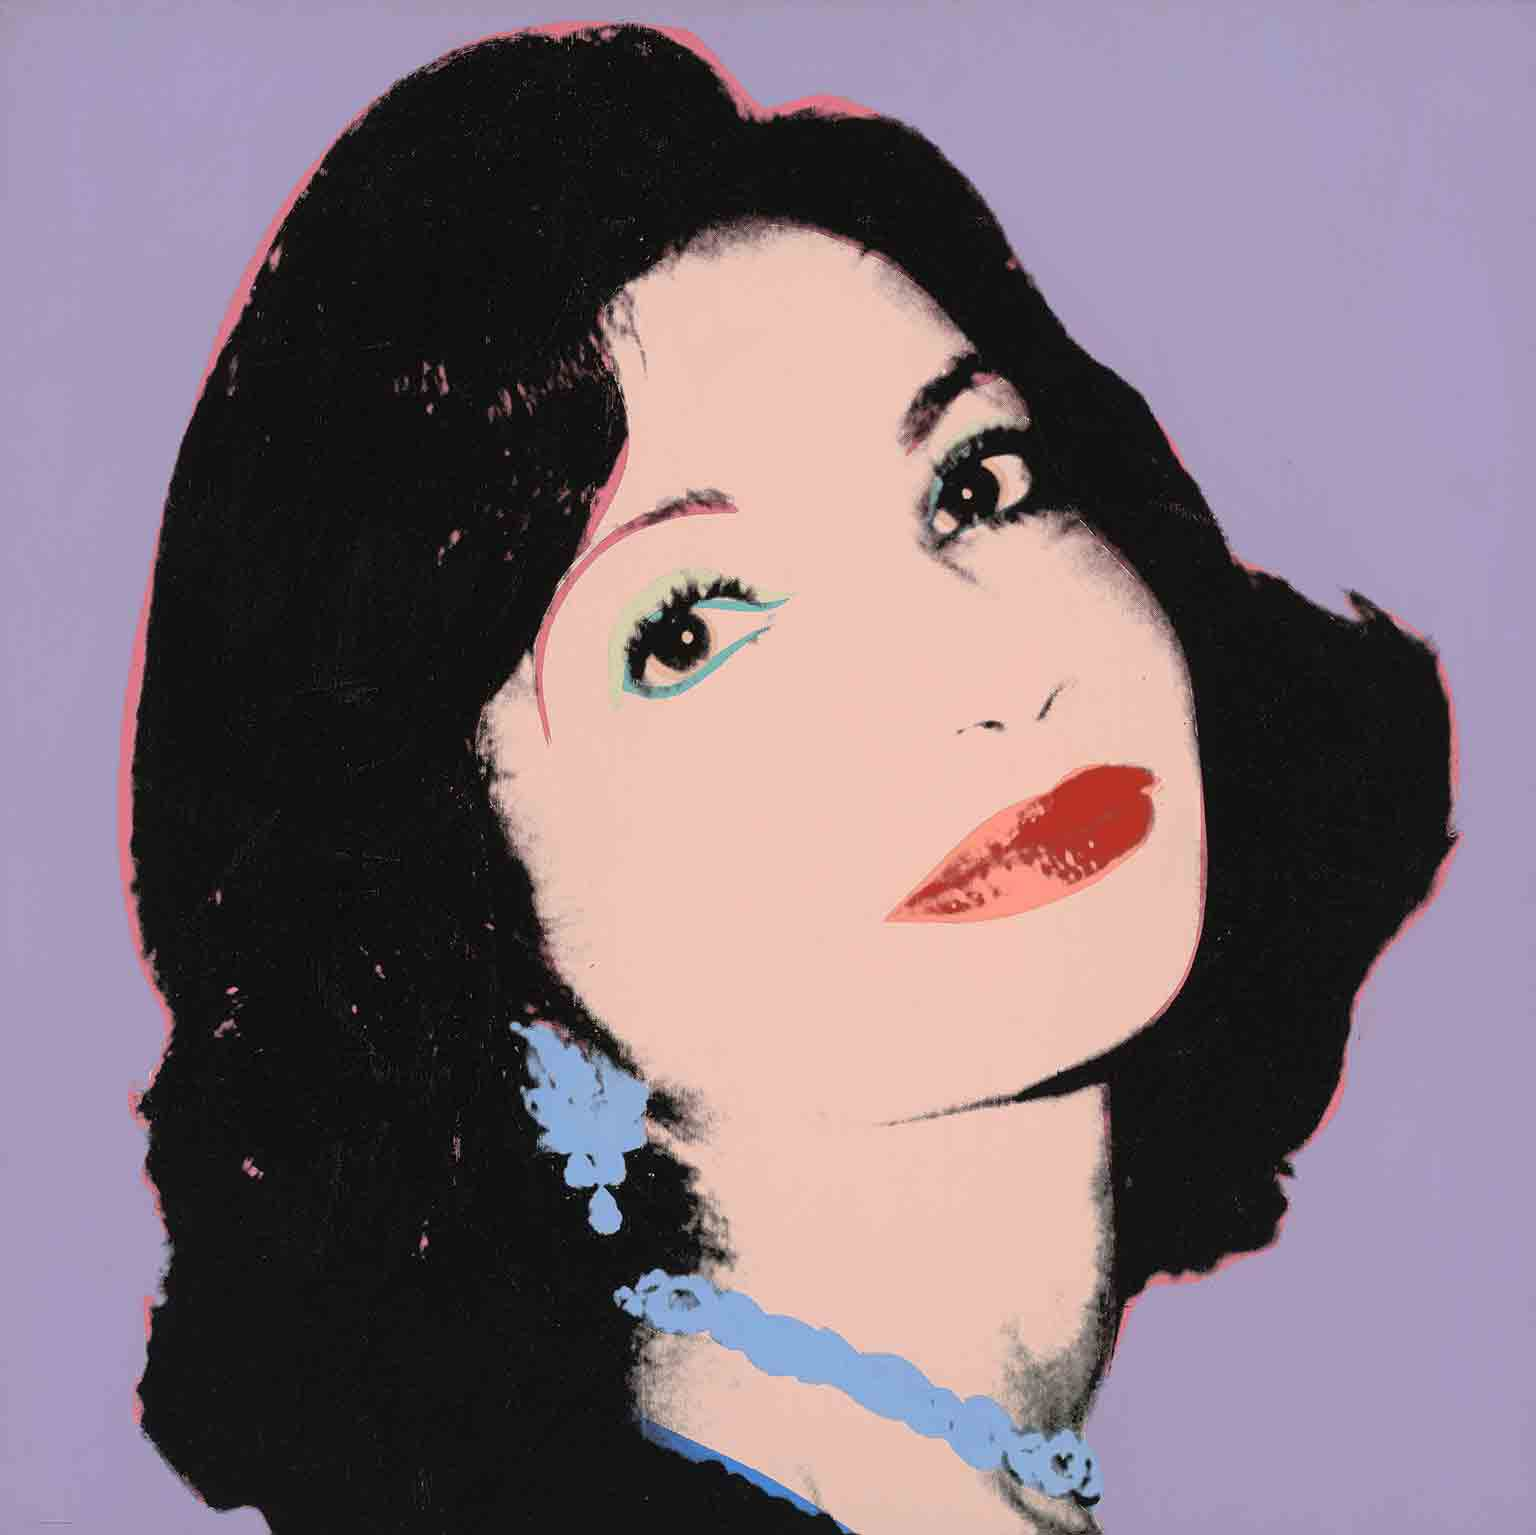 2. Andy Warhol: Works from the Hall Collection, Ashmolean Museum. 50% off with National Art Pass - Andy Warhol, Farah Ashraf Pahlavi (Princess of Iran), 1977 © The Andy Warhol Foundation for the Visual Arts Inc; the Artists Rights Society, New York